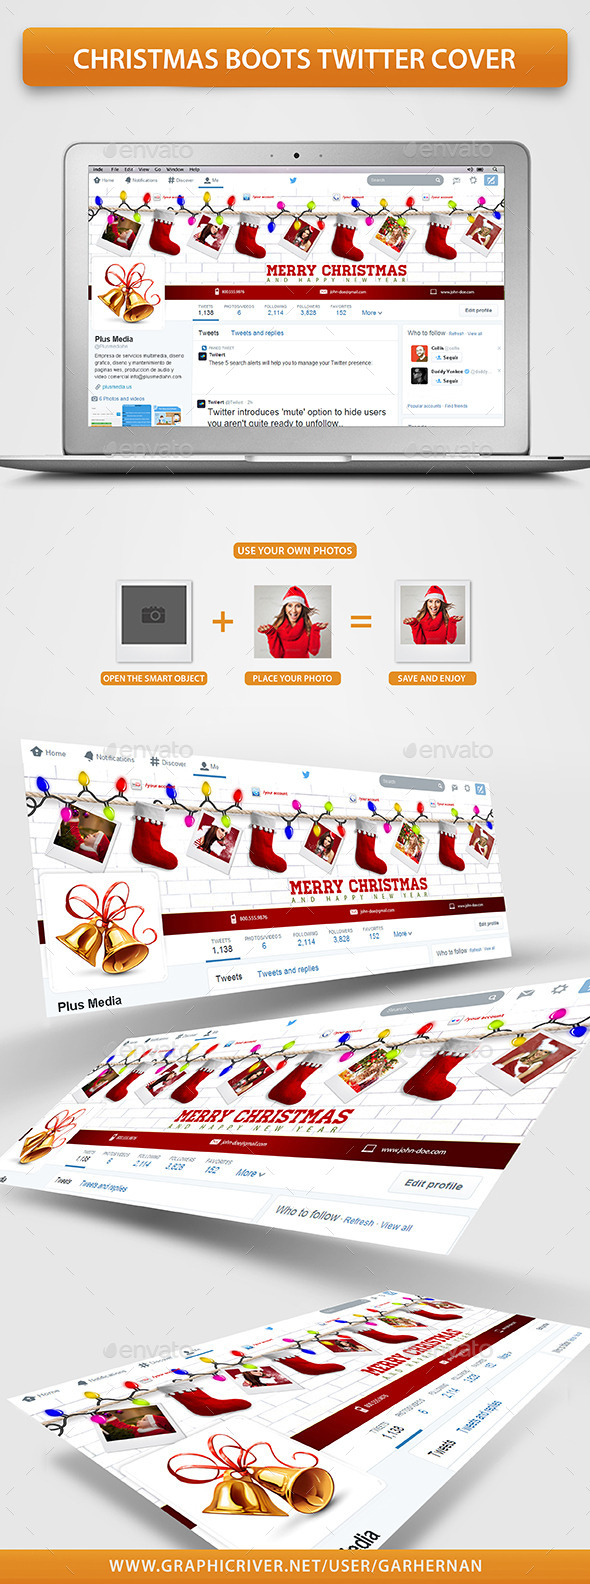 GraphicRiver Christmas Boots Twitter Cover 9626725